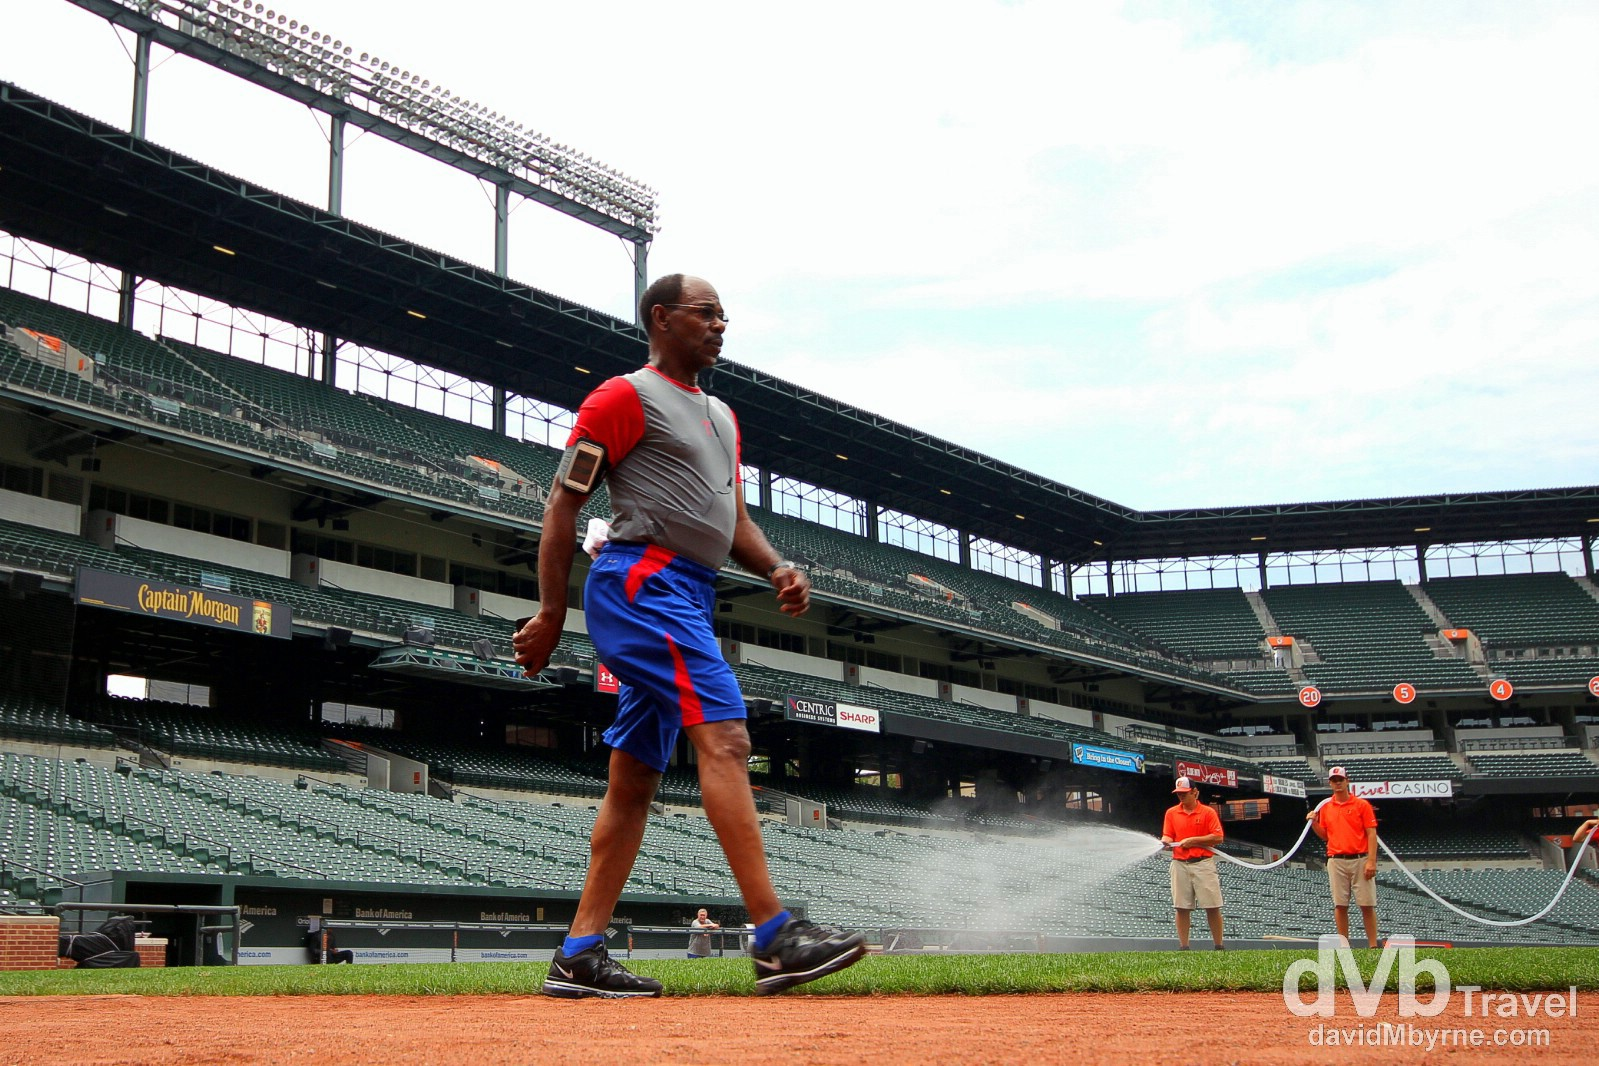 Texas Rangers manager Ron Washington doing laps of Oriole Park at Camden Yards as seen from the Oriole's dugout. Baltimore, Maryland, USA. July 10th 2013.